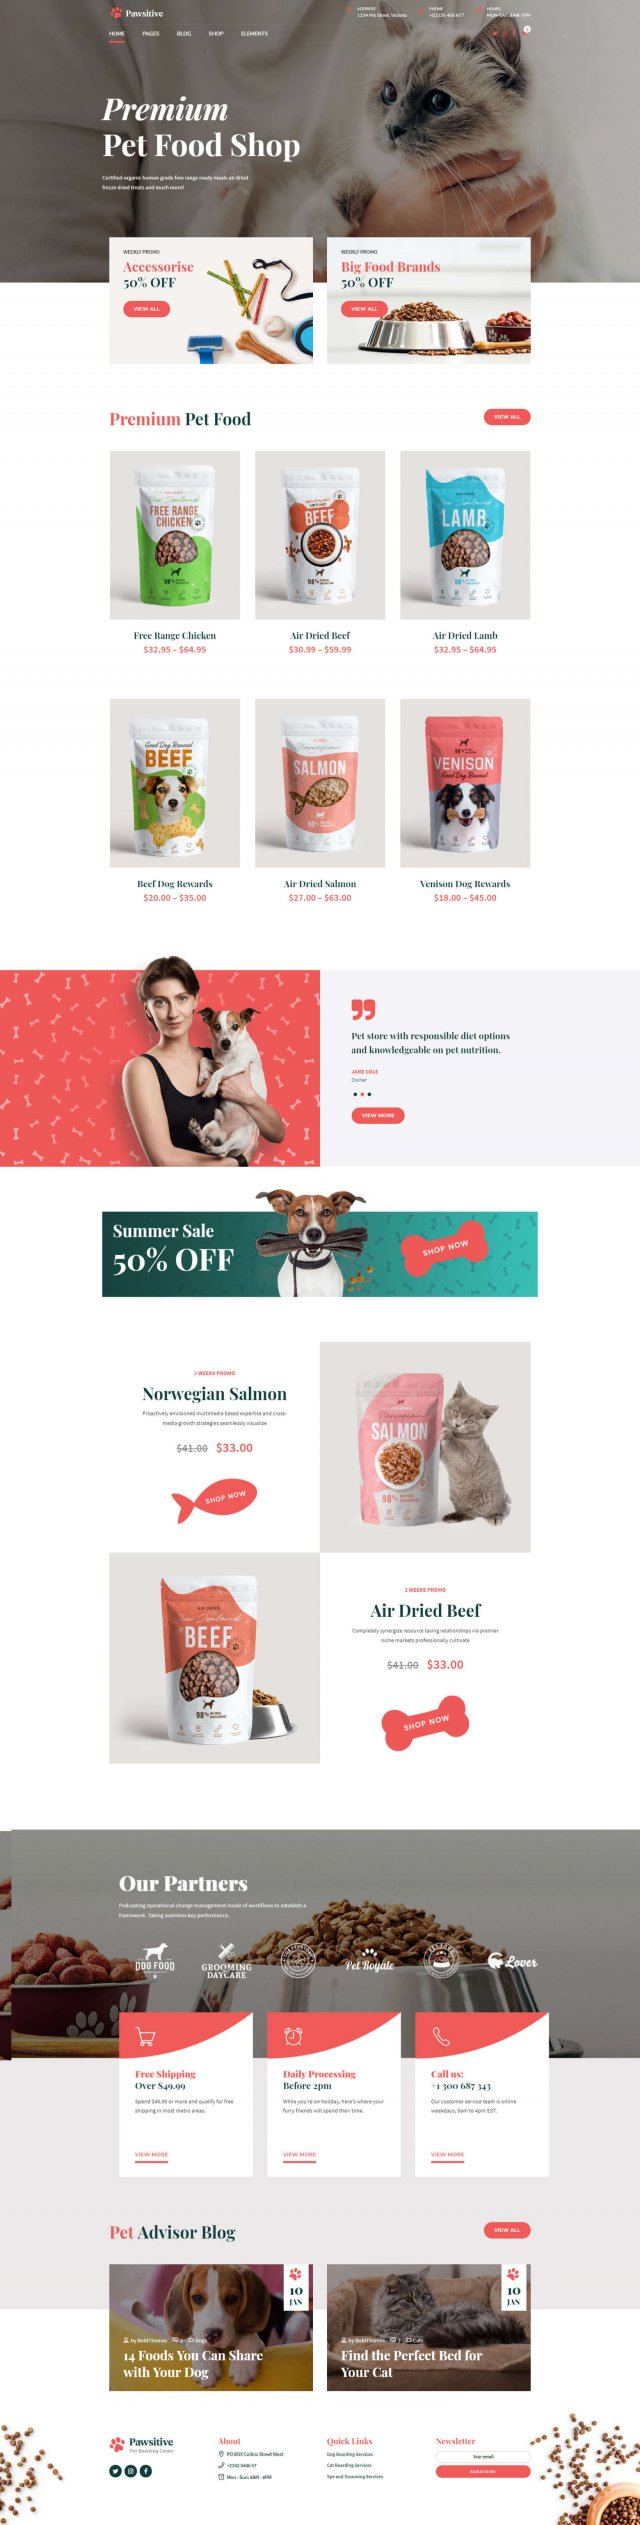 http://pawsitive.bold-themes.com/wp-content/uploads/2019/09/Bella-Home-03-640x2525.jpg